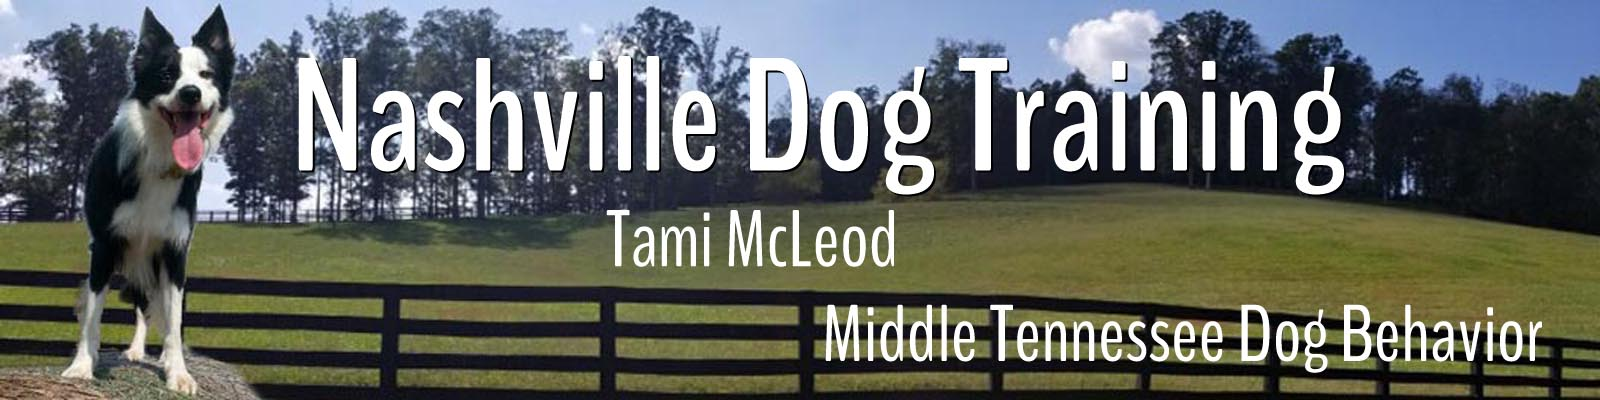 Nashville Dog Training | Tami McLeod Middle Tennessee Dog Behavior